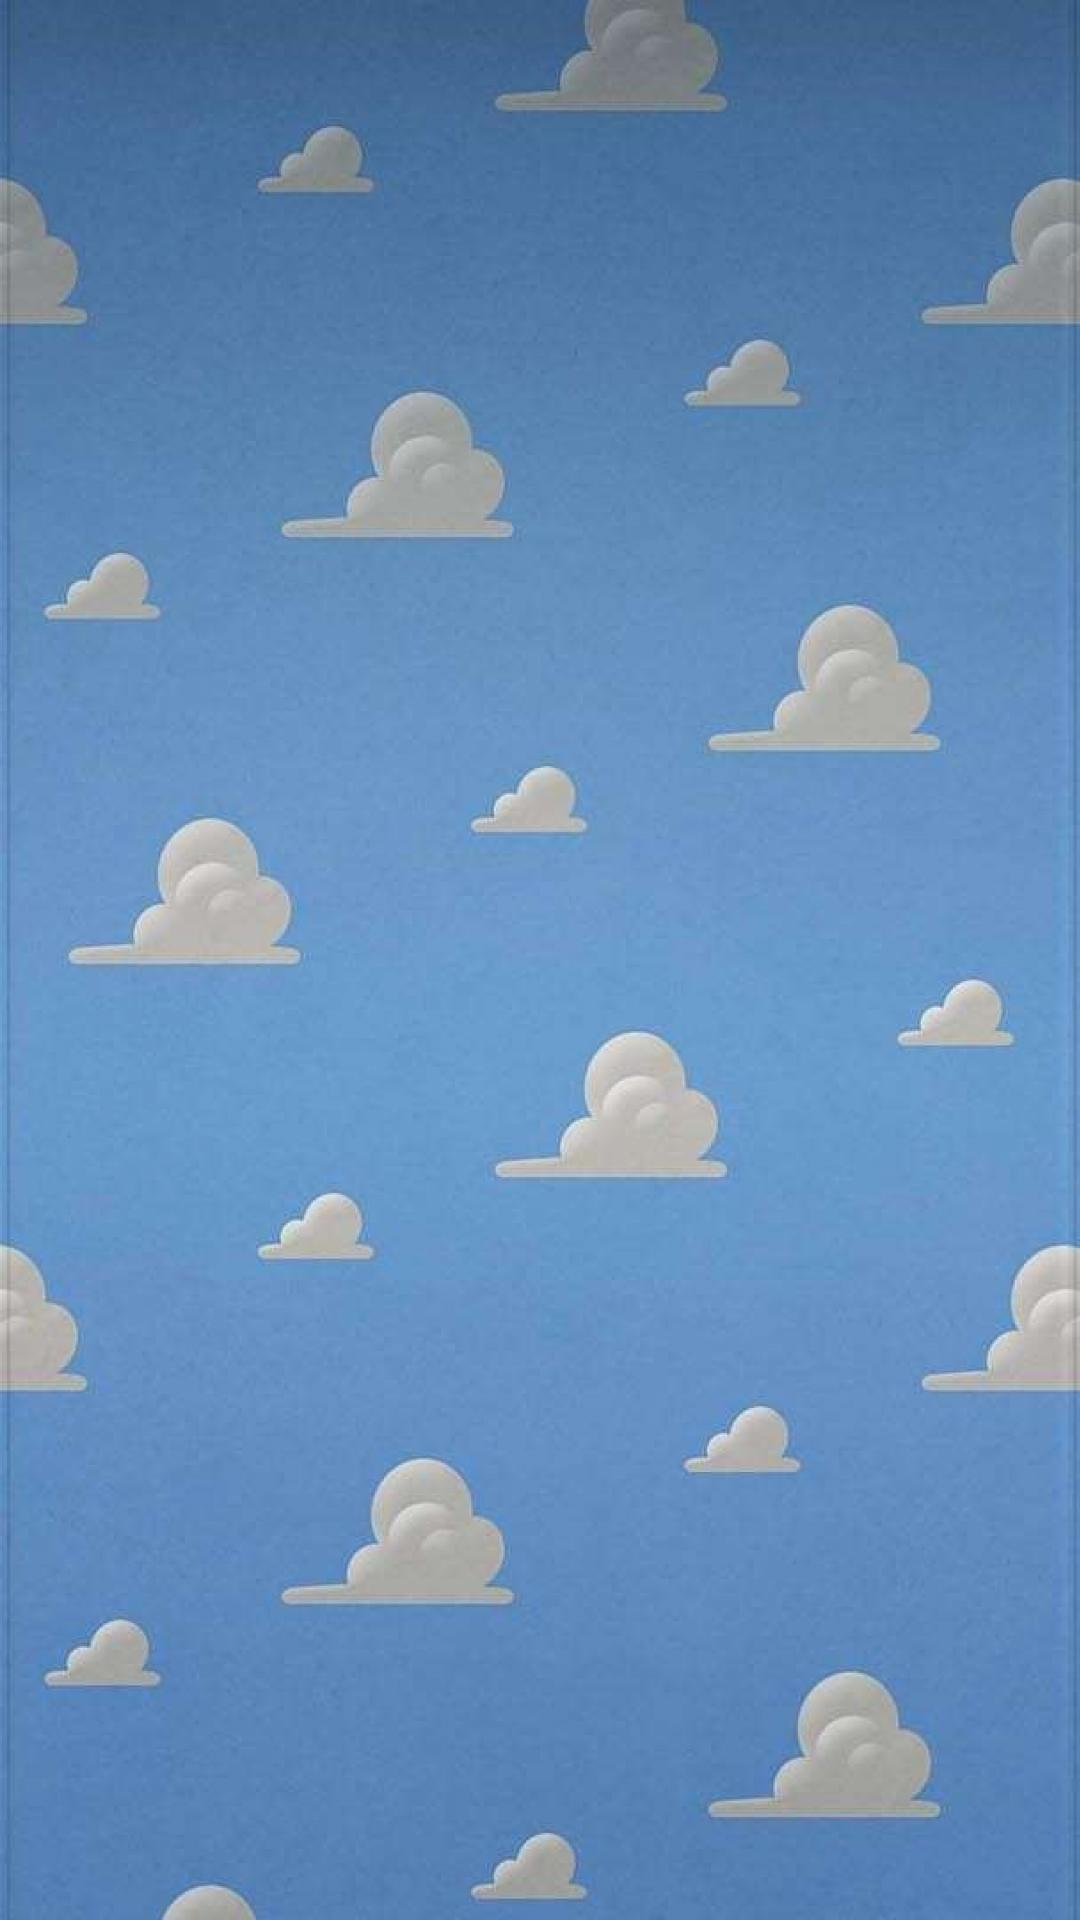 Free Download Clouds Toy Story Bedroom Wallpaper 54974 1080x1920